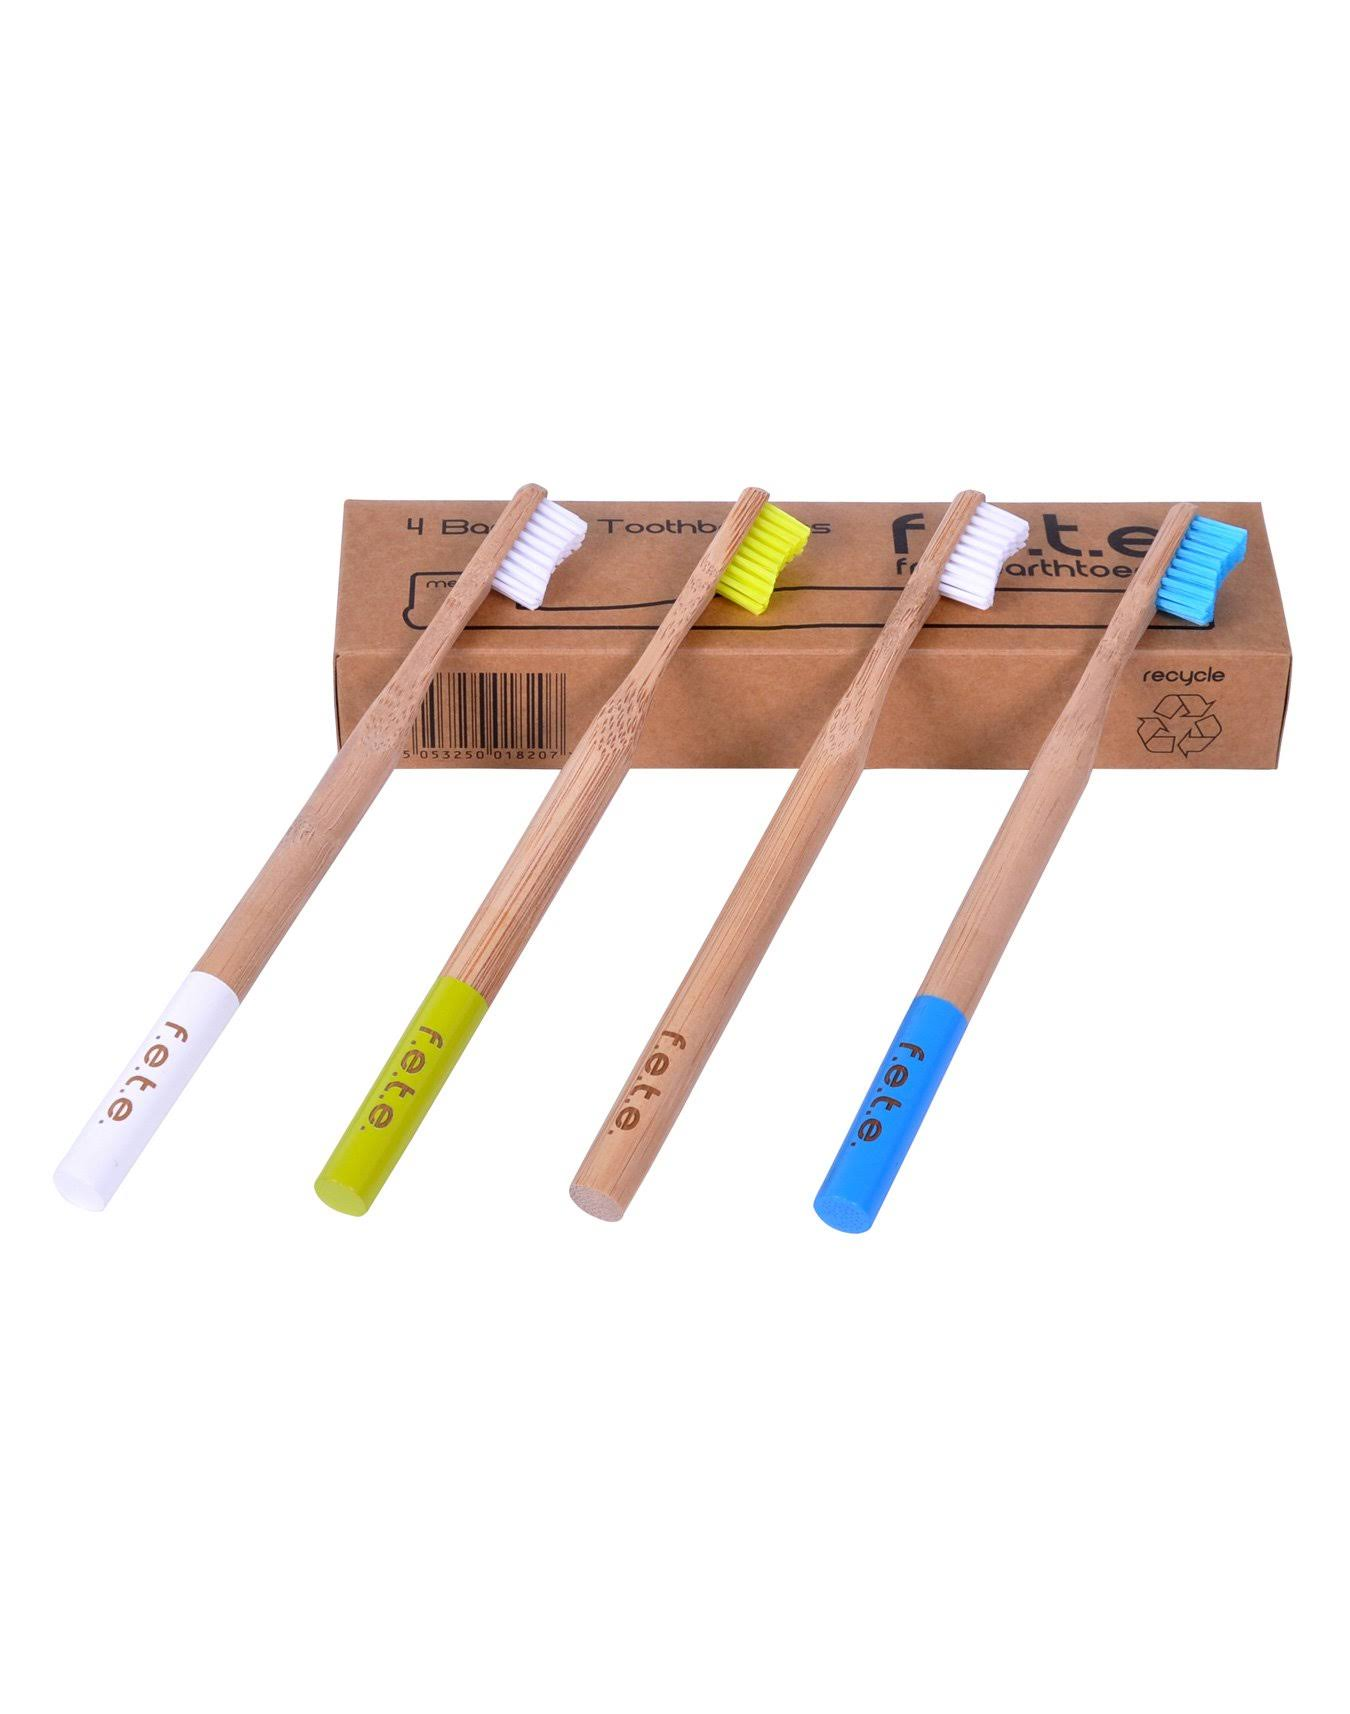 FETE Bamboo Toothbrush - Best Eco-Friendly Bamboo Handles and BPA-Free Biodegradable Nylon Bristles For Natural Dental Care